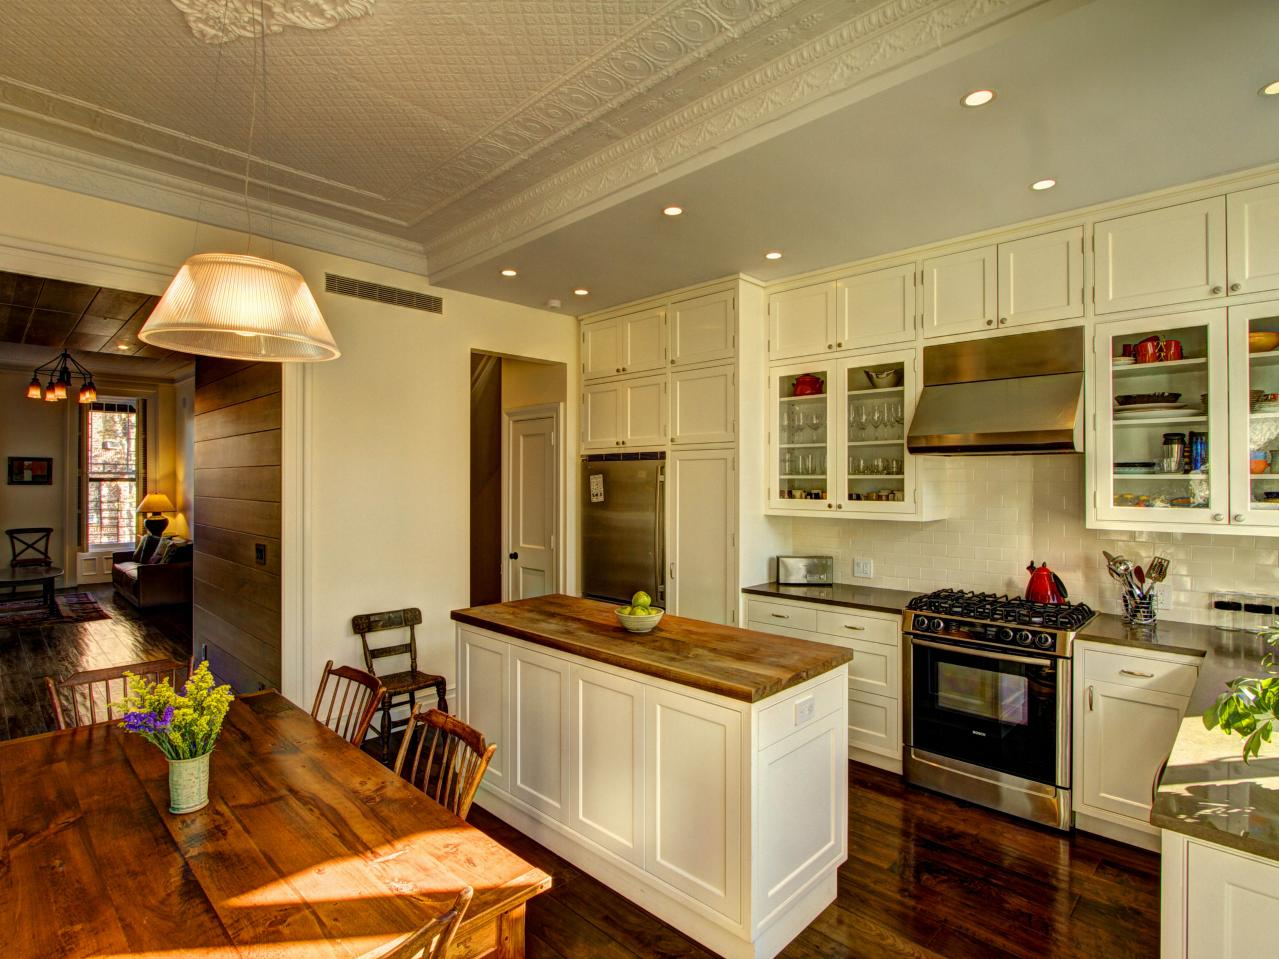 DP_Ben-Herzog-white-traditional-kitchen_h.jpg.rend.hgtvcom.1280.960